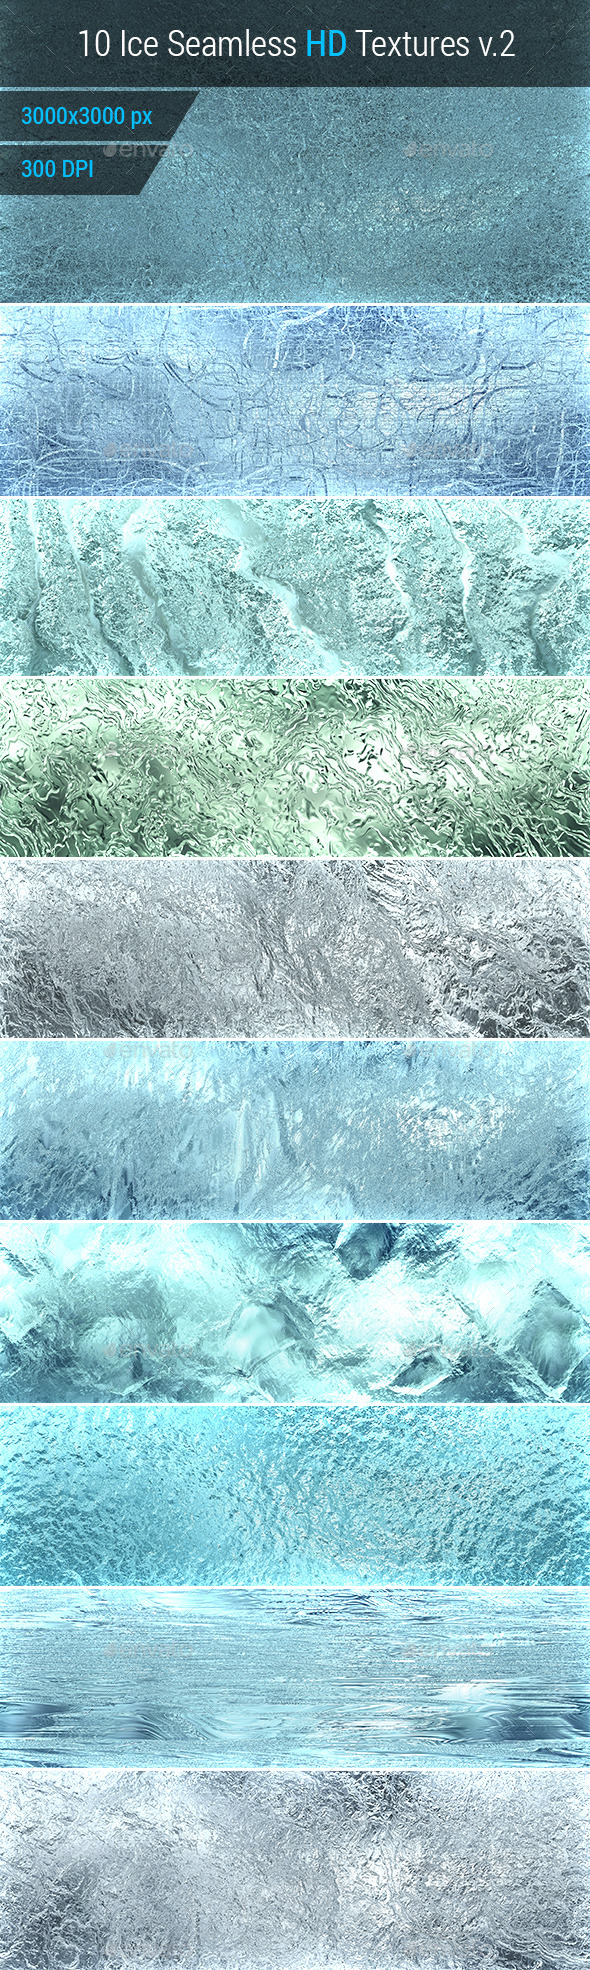 Ice Seamless and Tileable Background Texture v.2 - Nature Textures